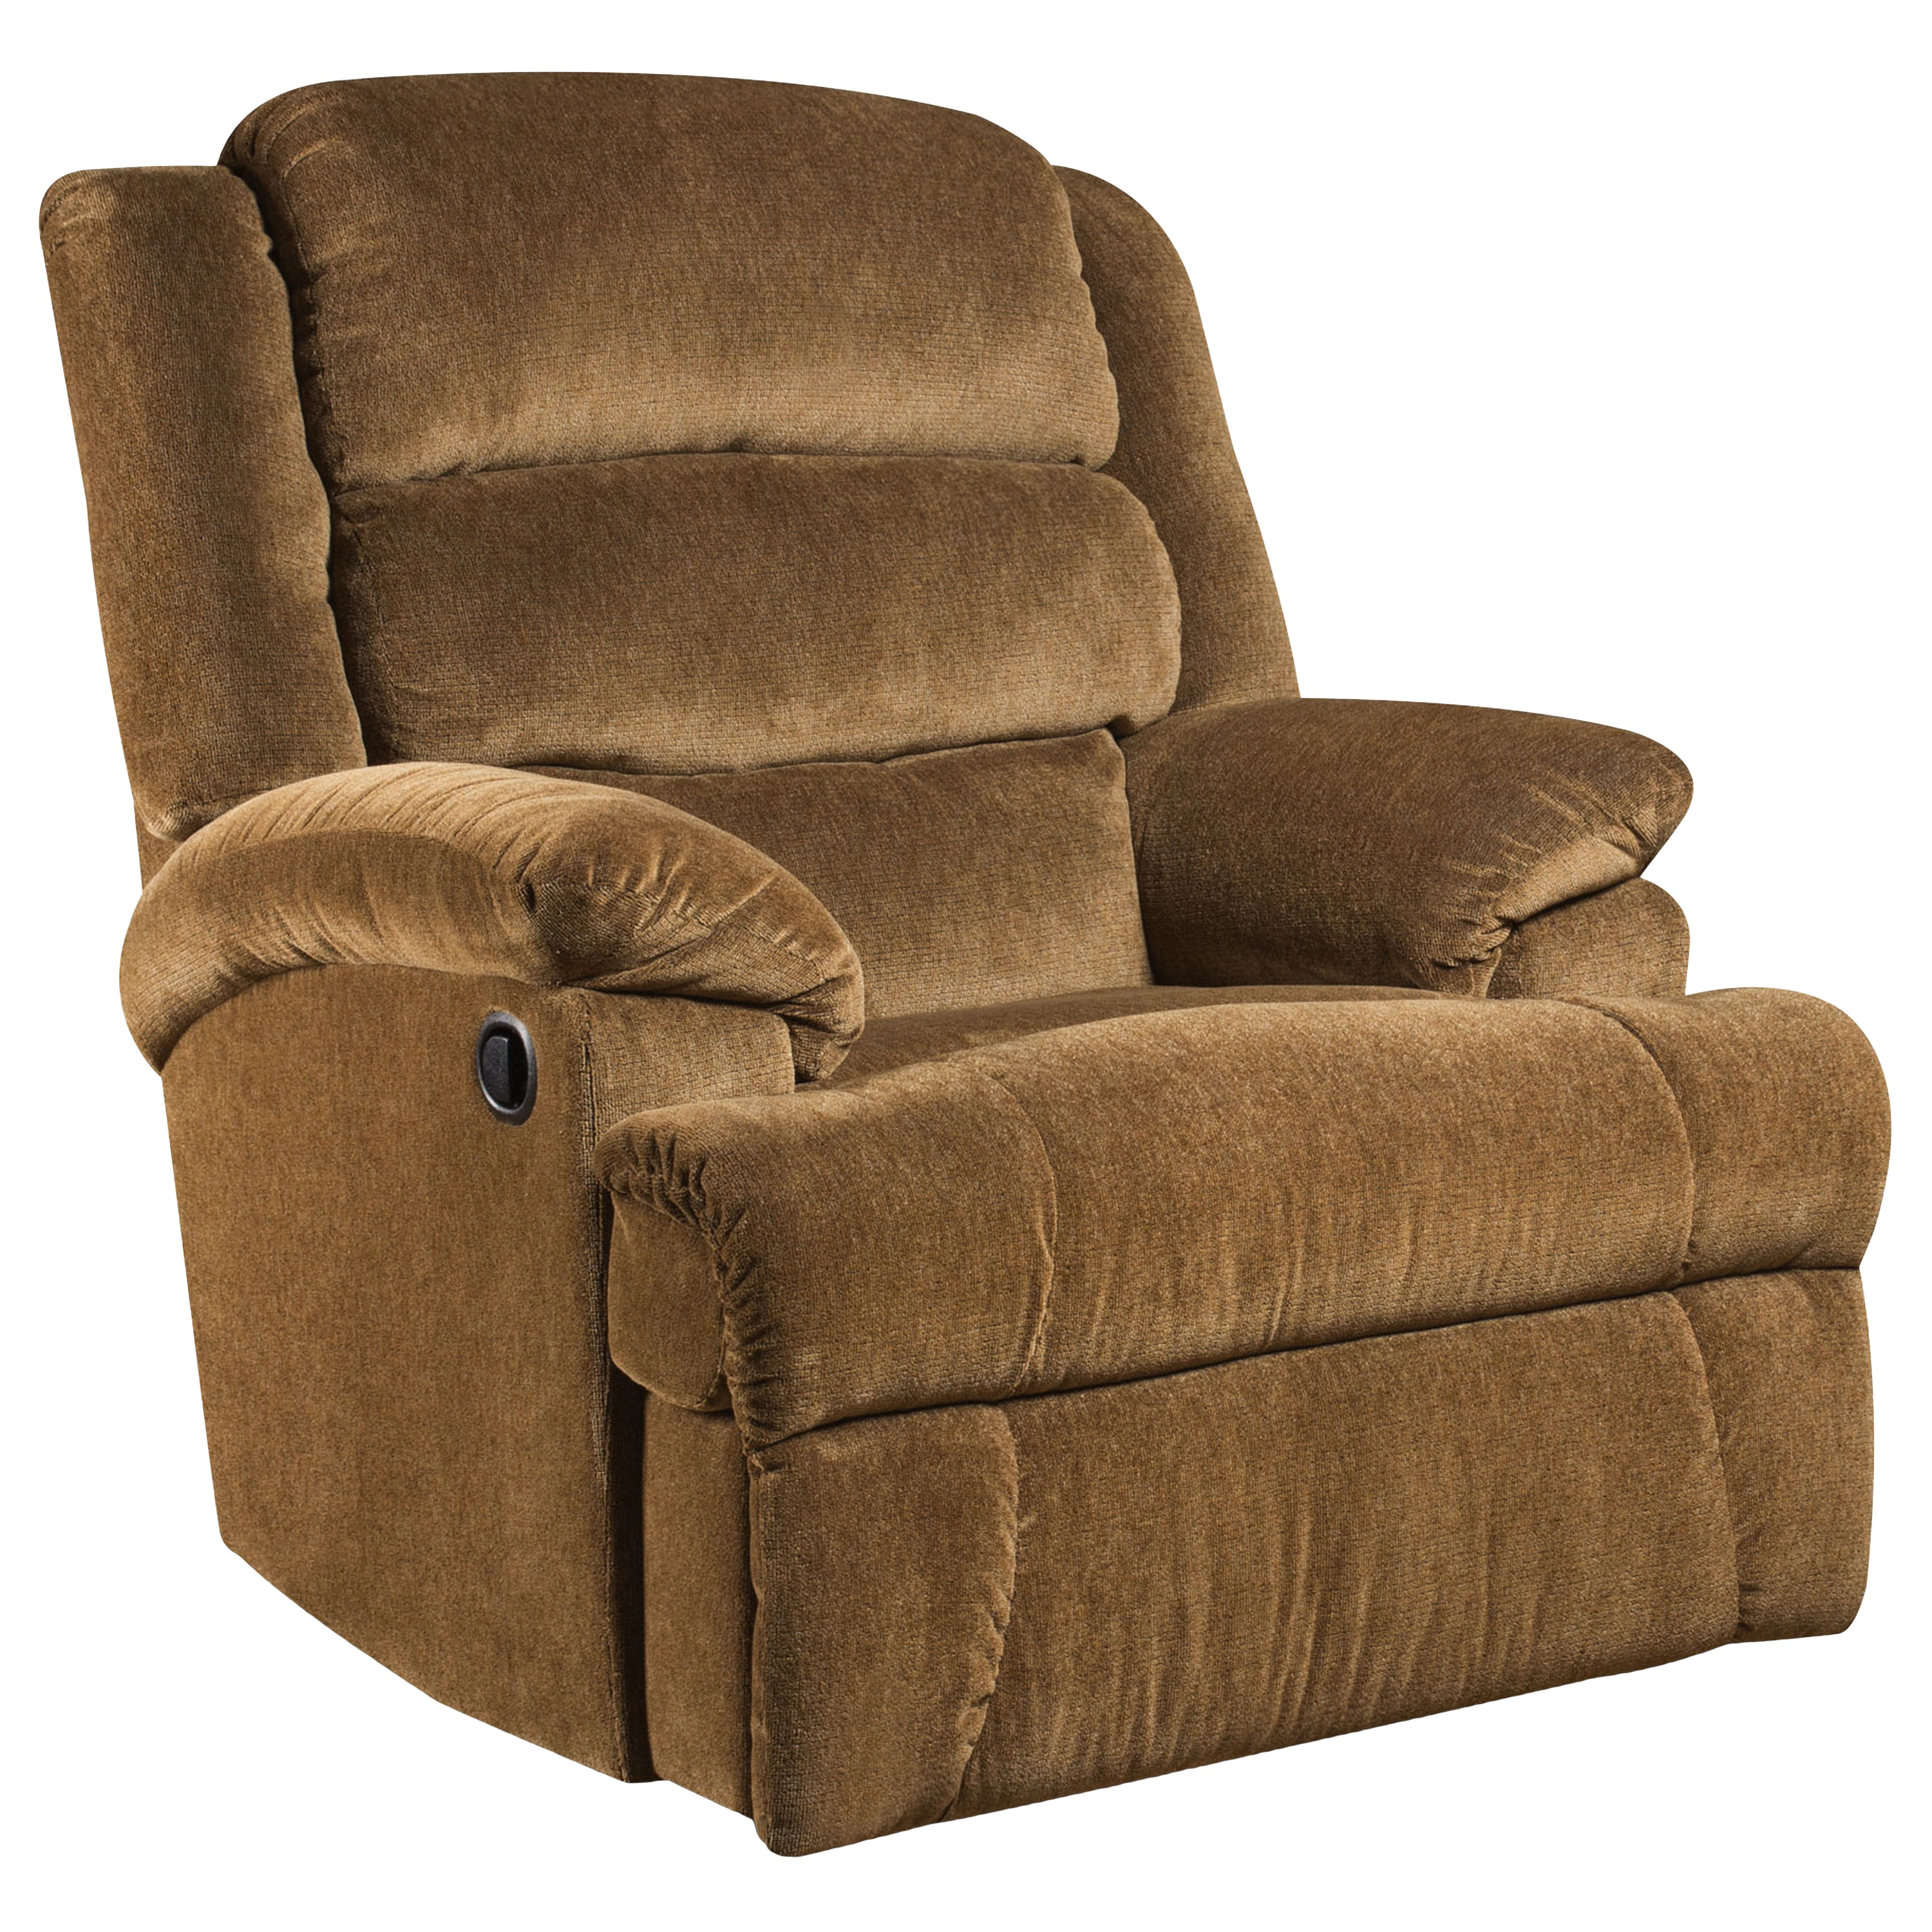 FLASH Furniture Big and Tall 350-pound Capacity Aynsley M...